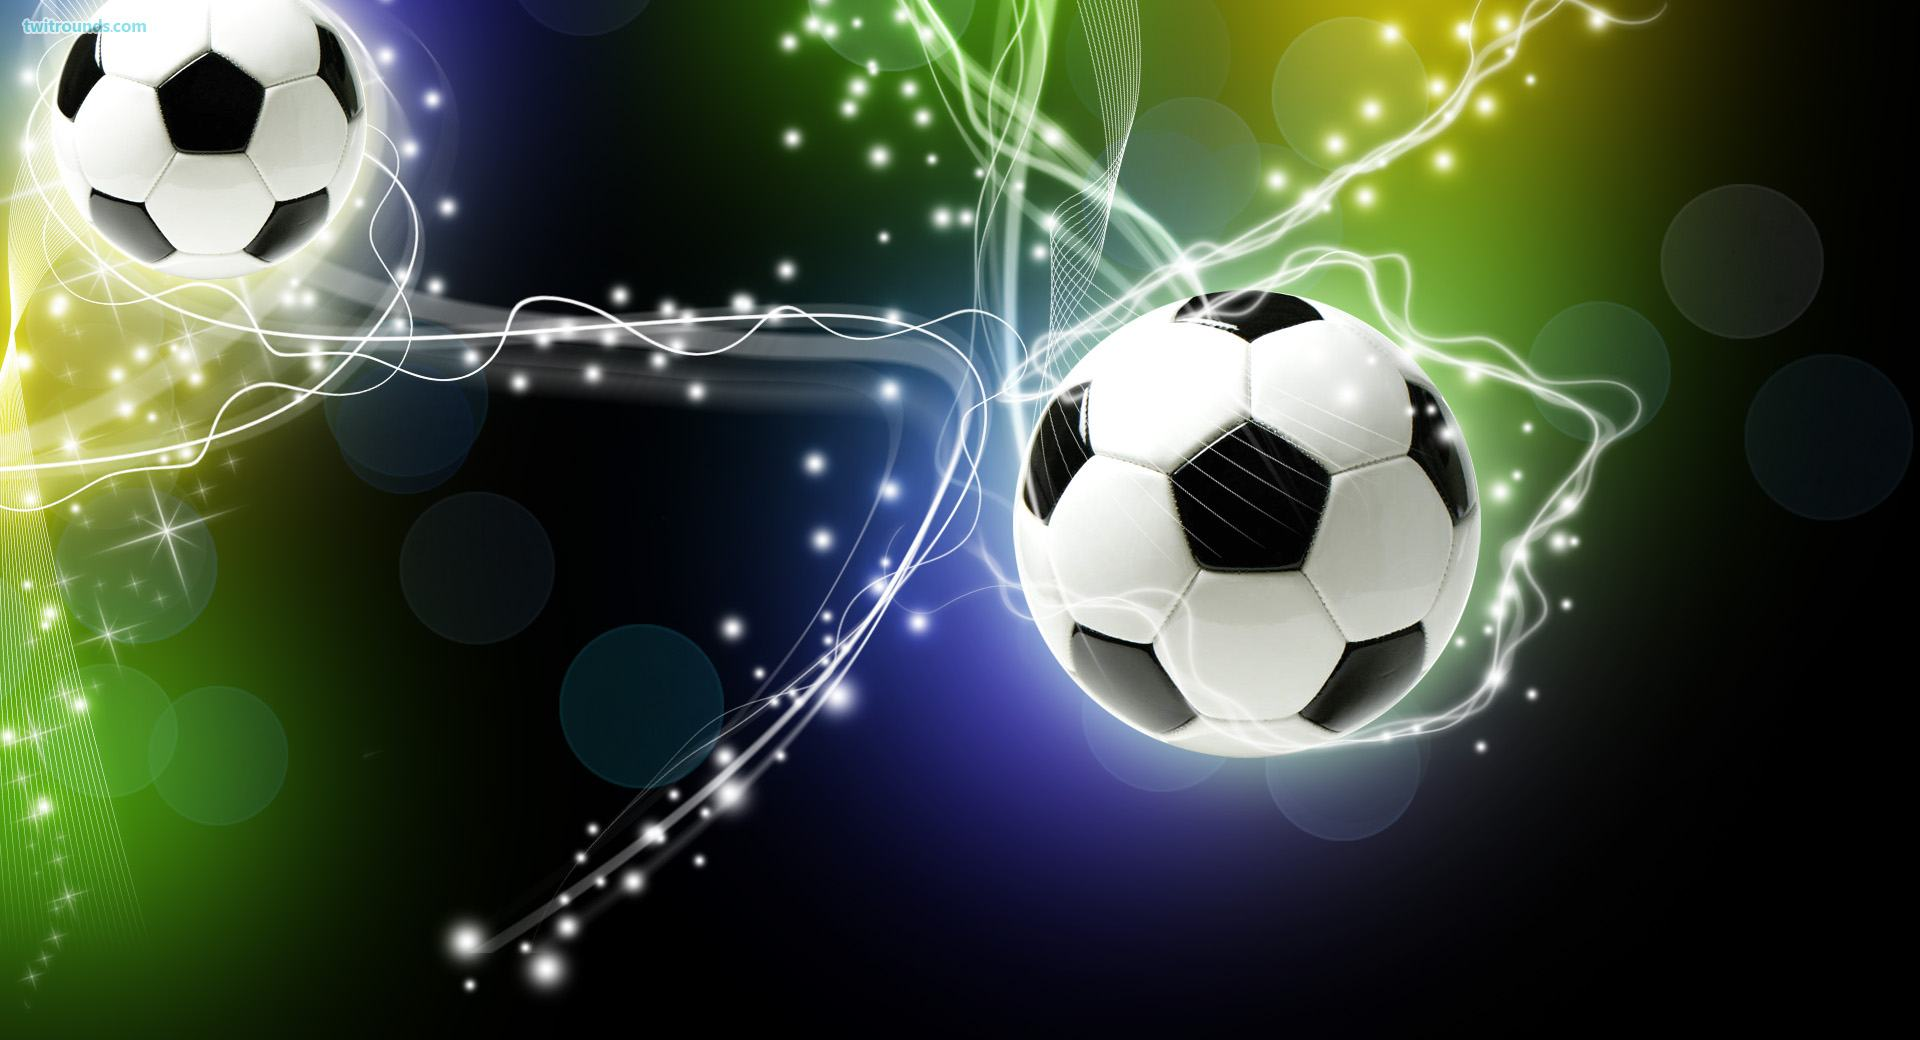 Soccers with Ball Backgrounds